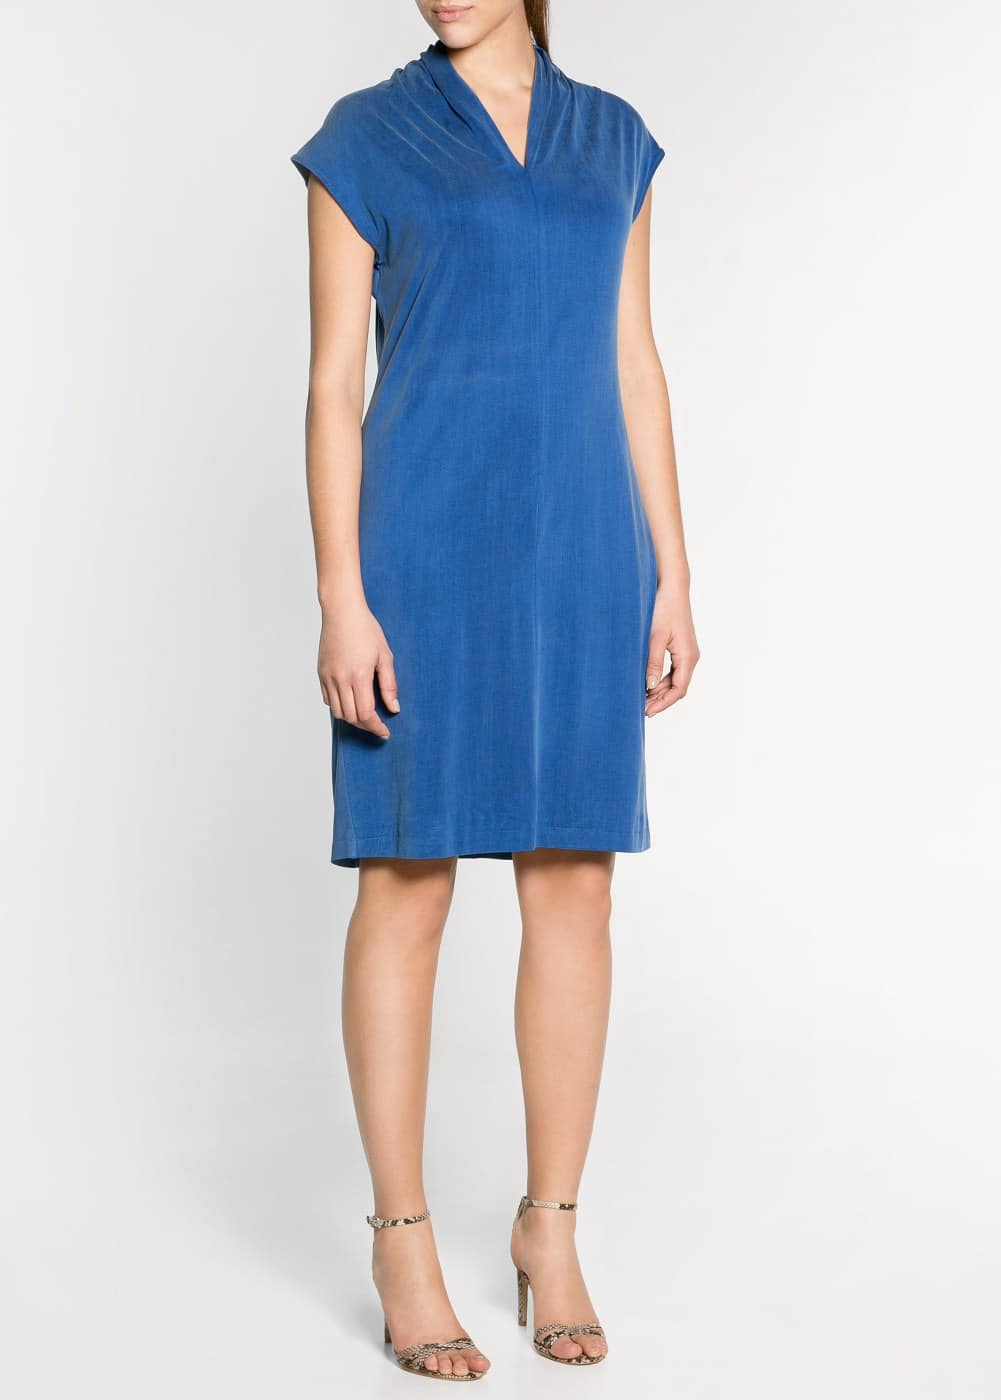 Contrast cupro dress